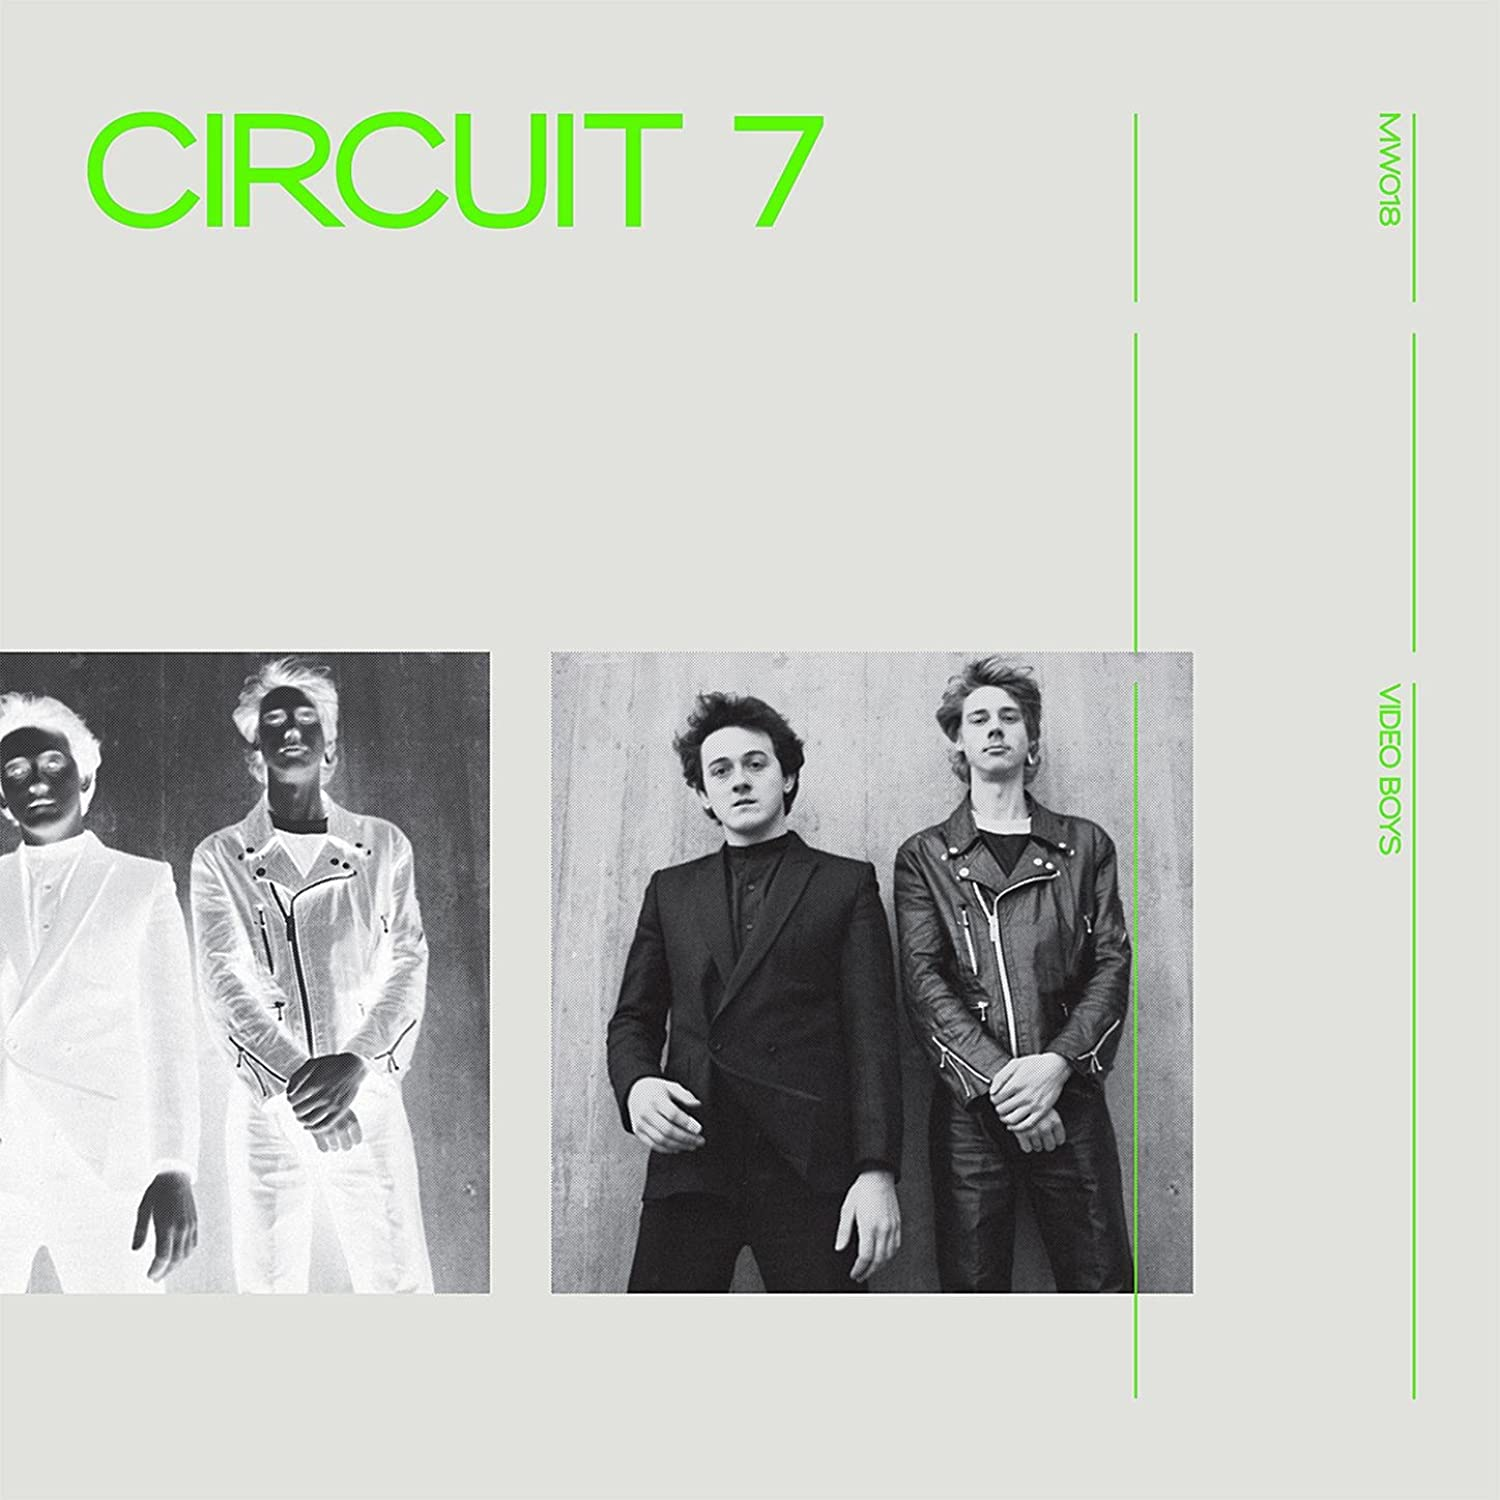 Circuit 7 - Video Boys